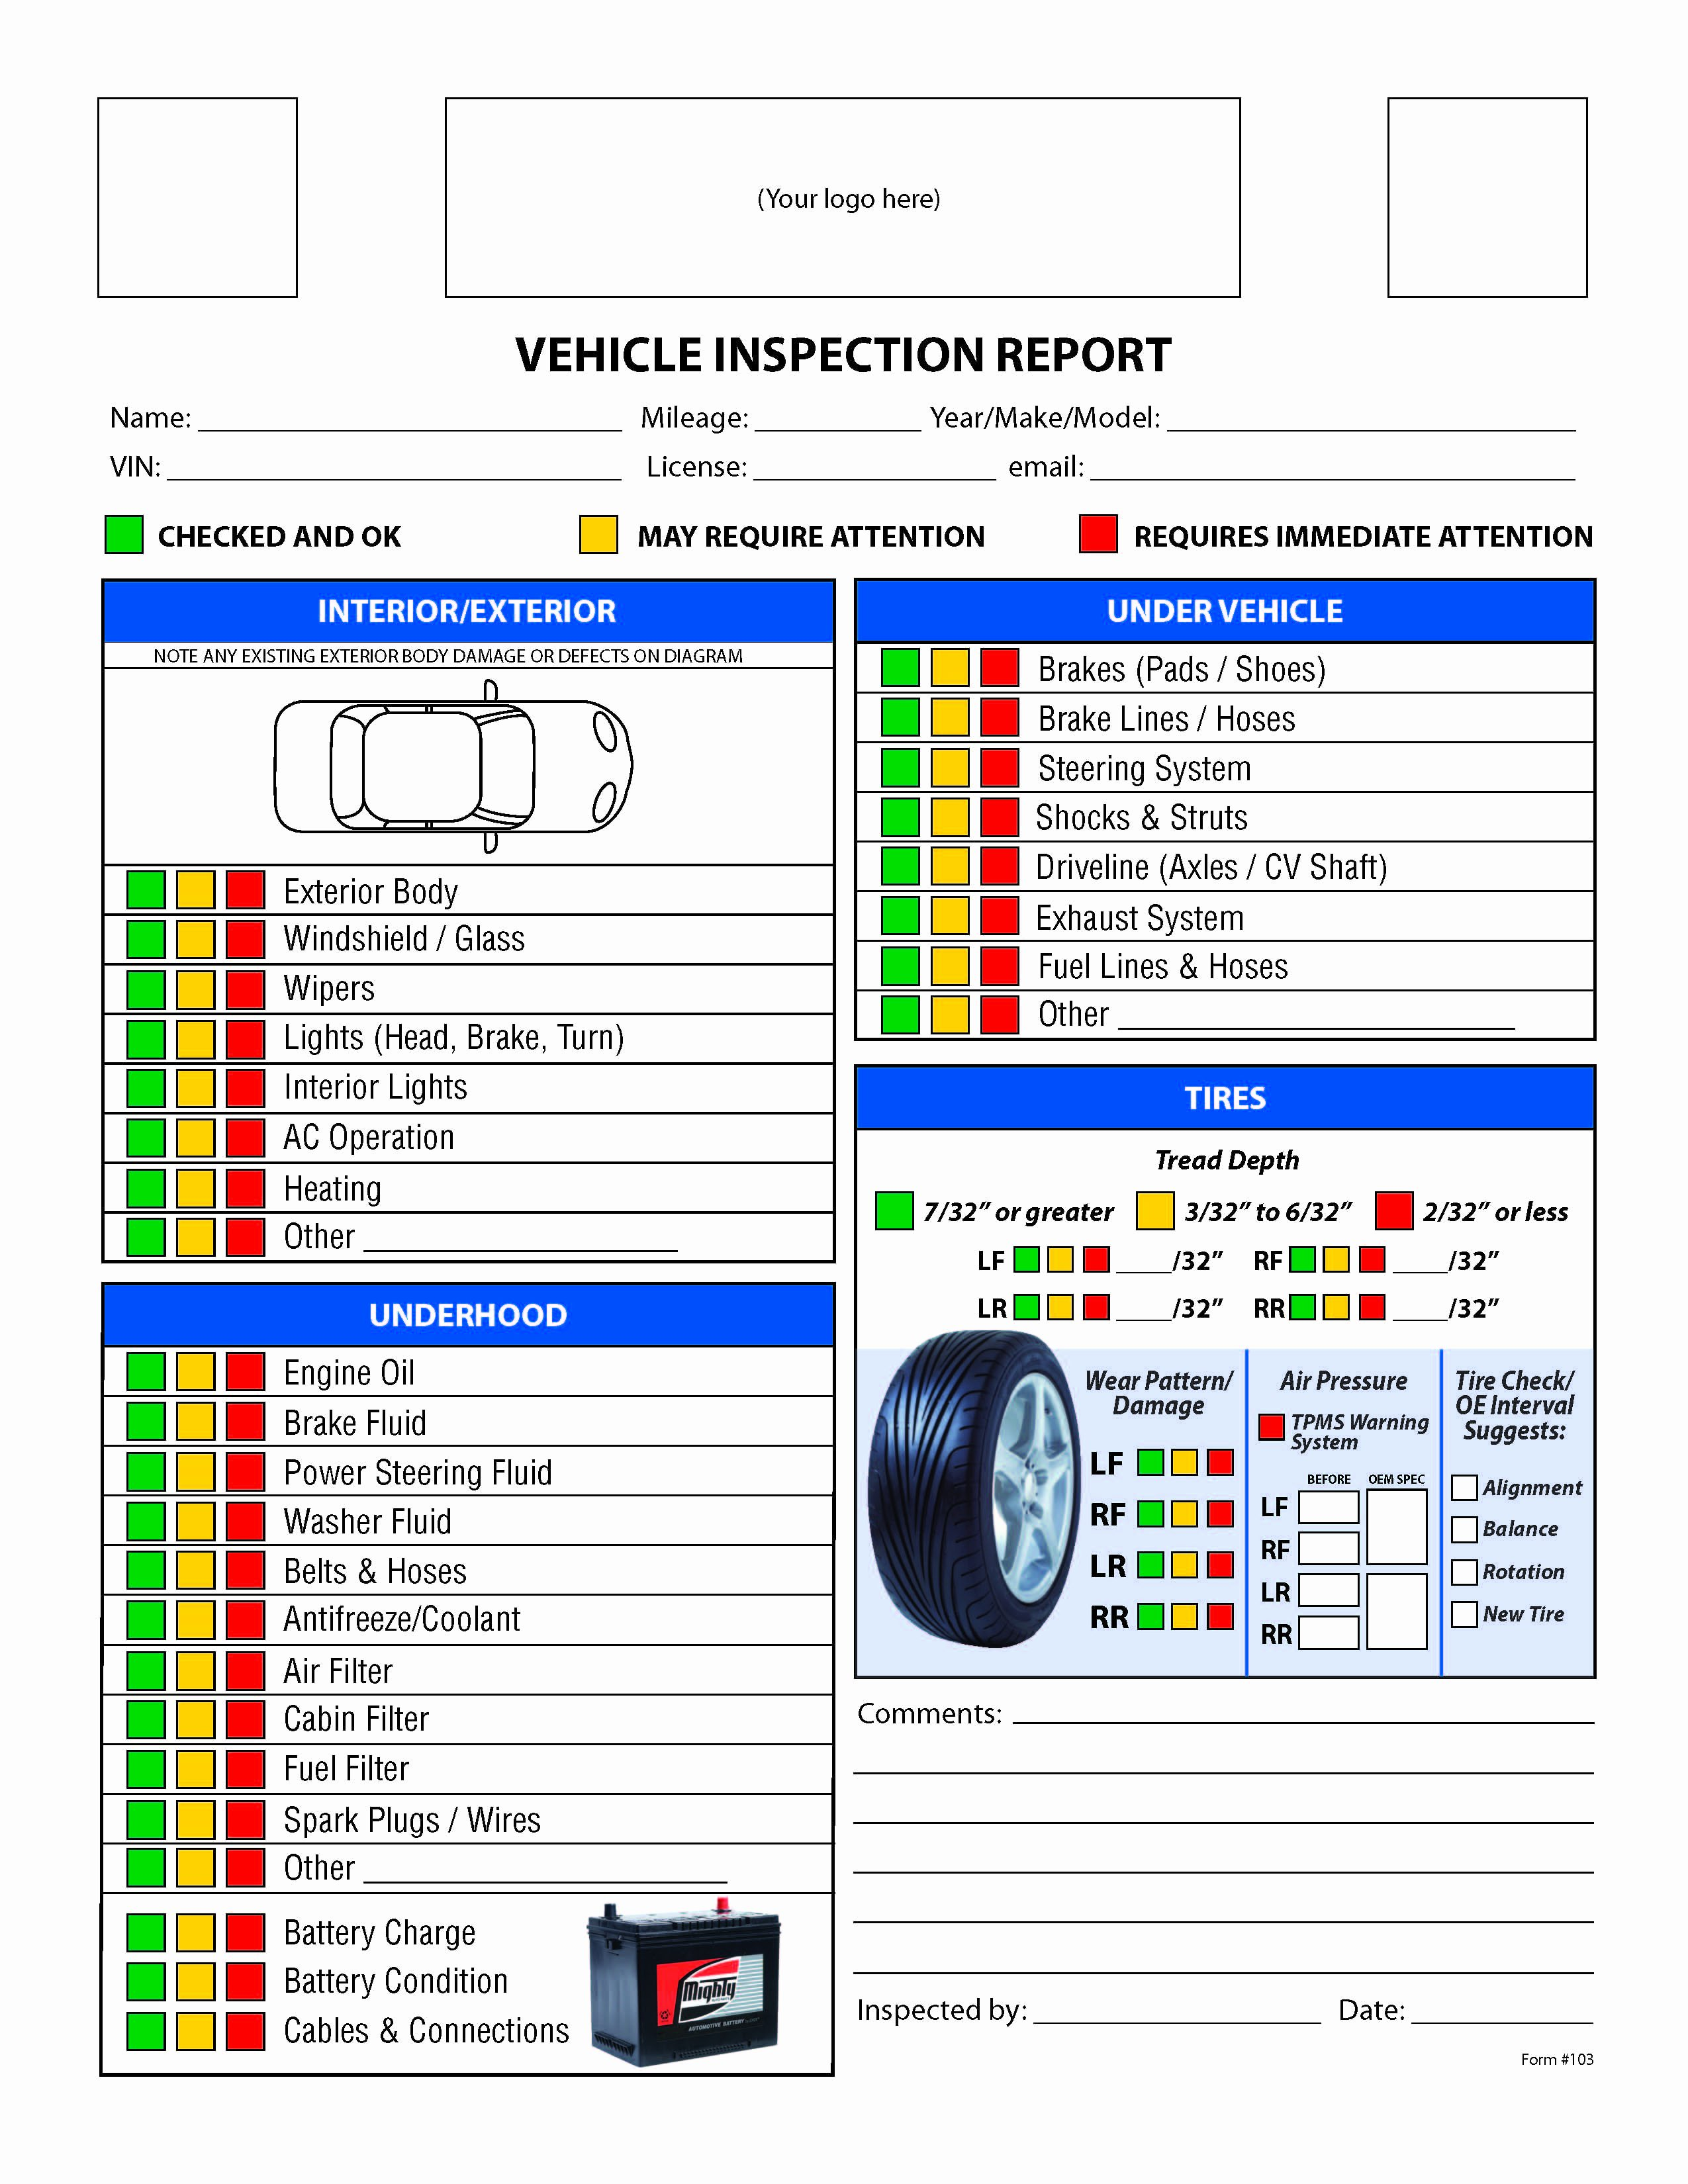 Daily Vehicle Inspection form Template Inspirational Free Vehicle Inspection Checklist form